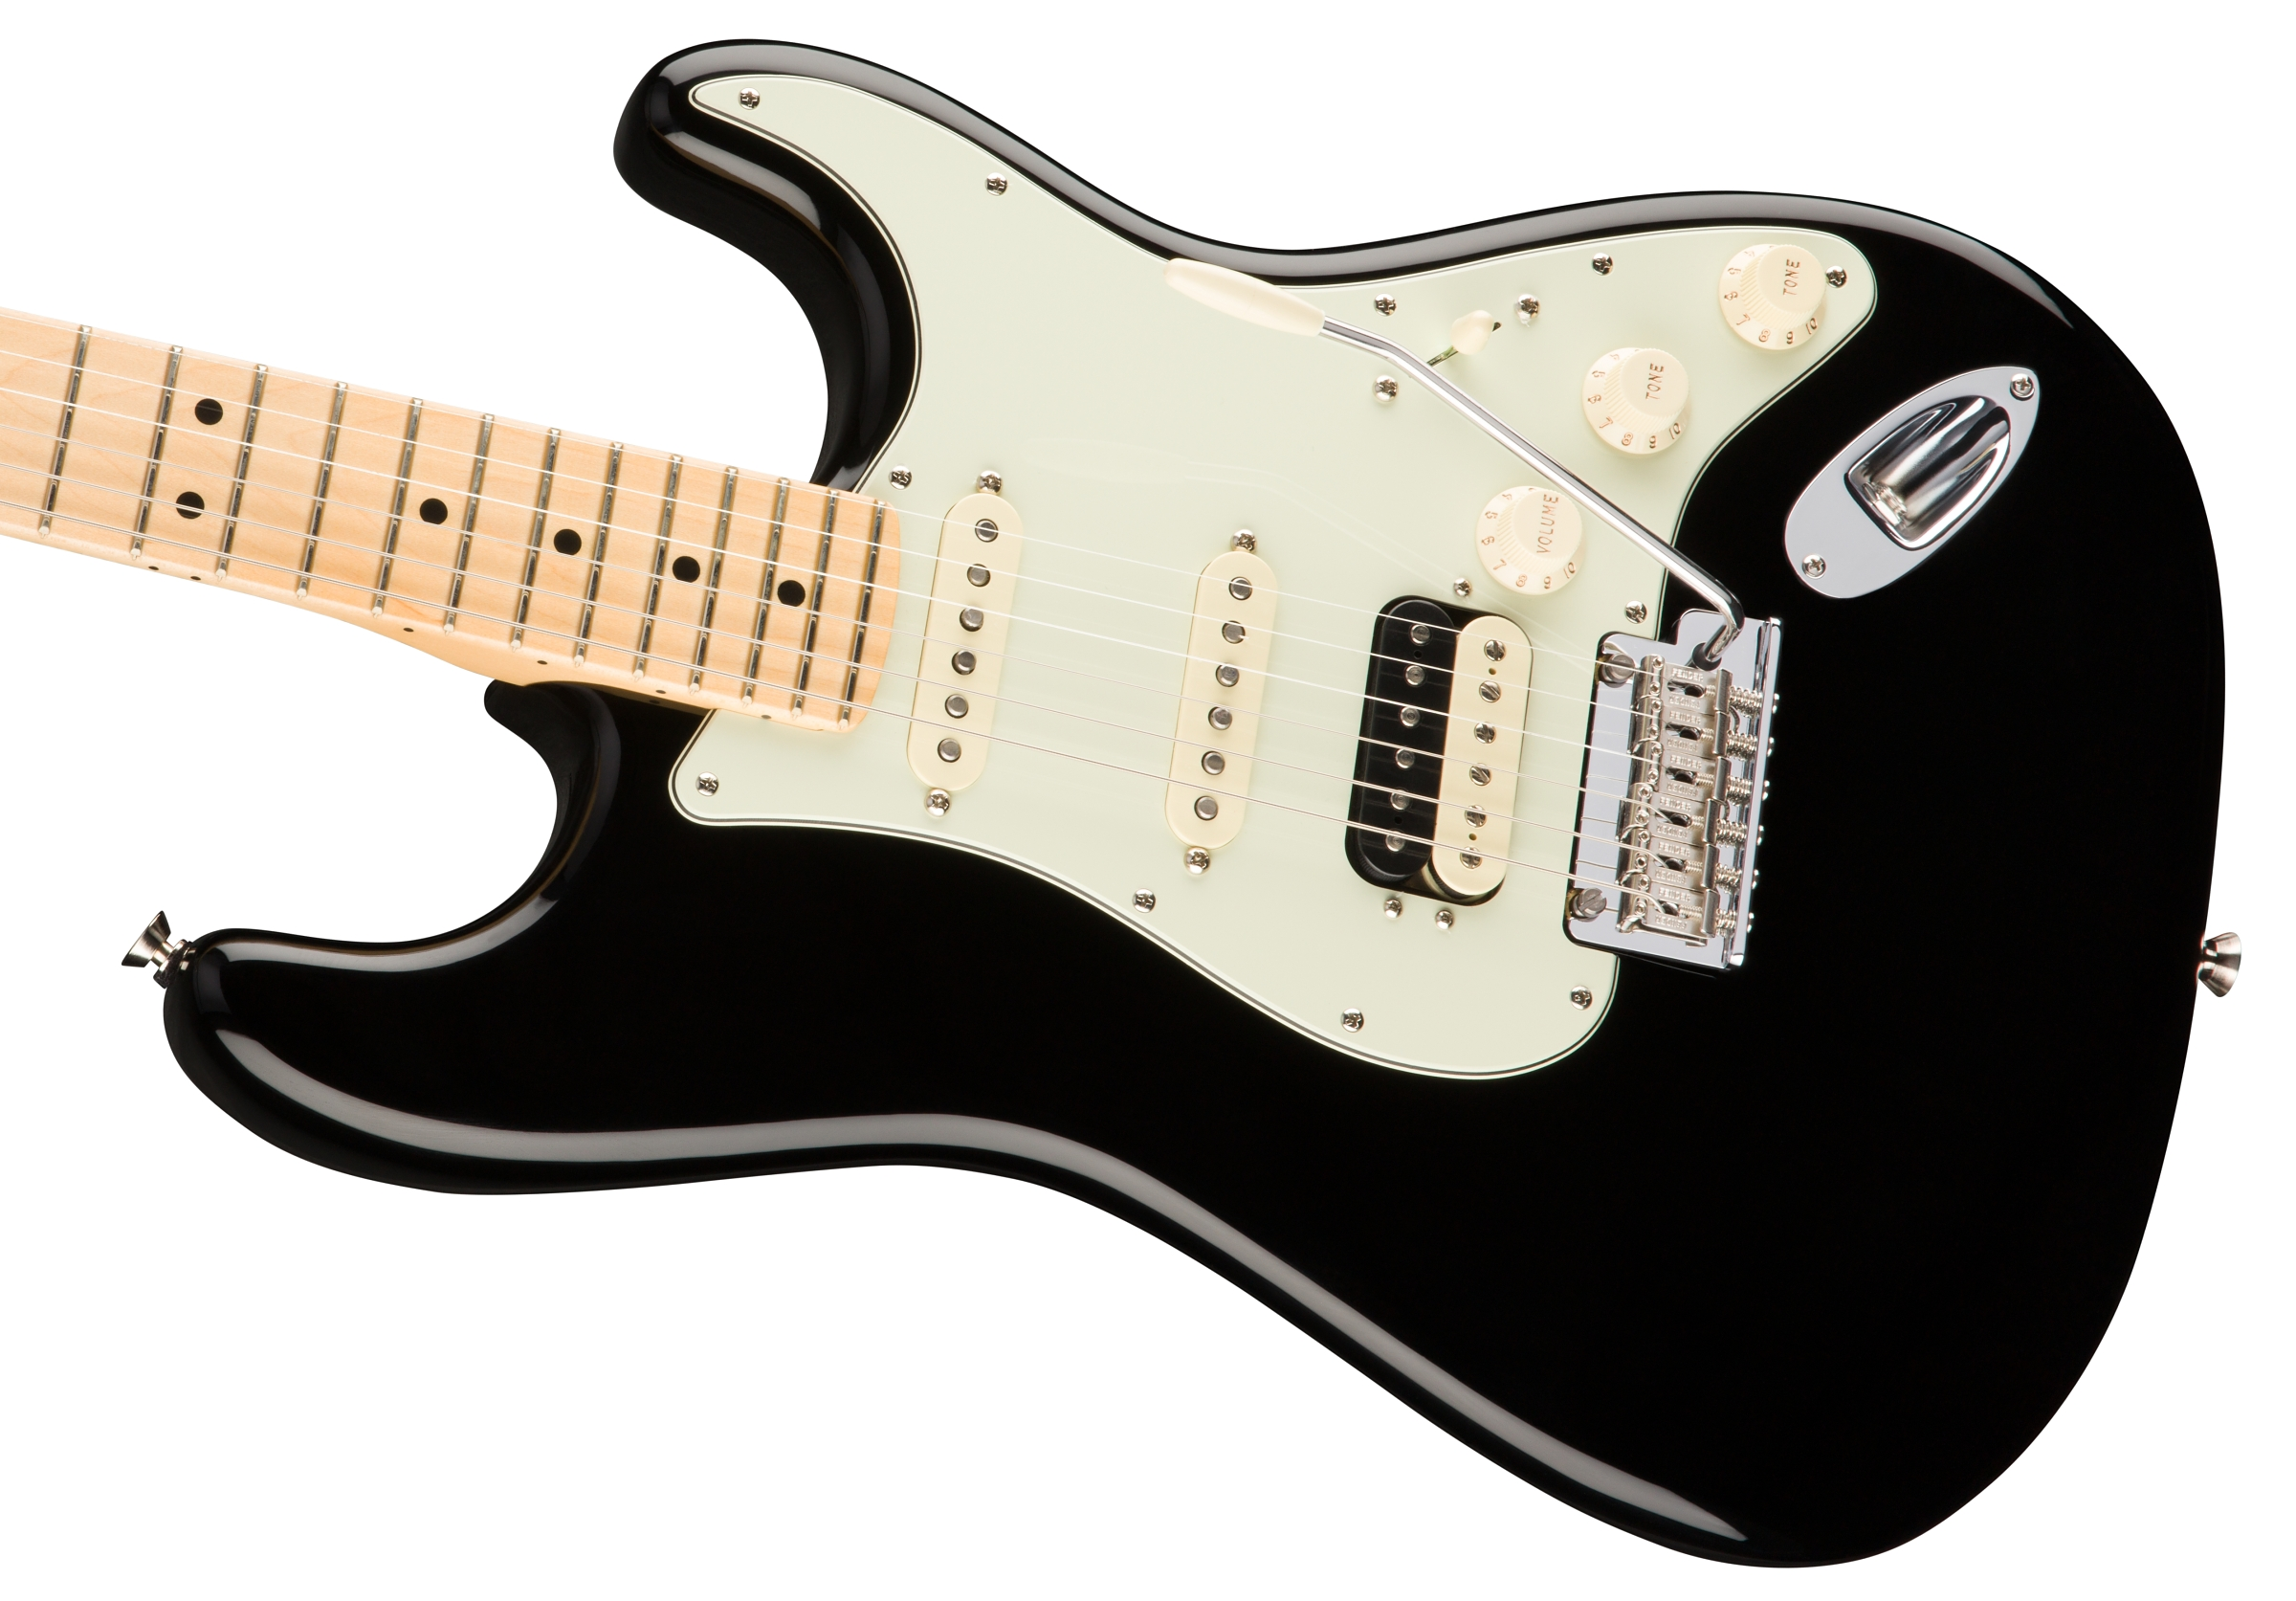 Fender Cyclone Ii Wiring Diagram Electrical Korean Squier Stratocaster Hss 48 Diagrams 5 Pickups Seymour Duncan